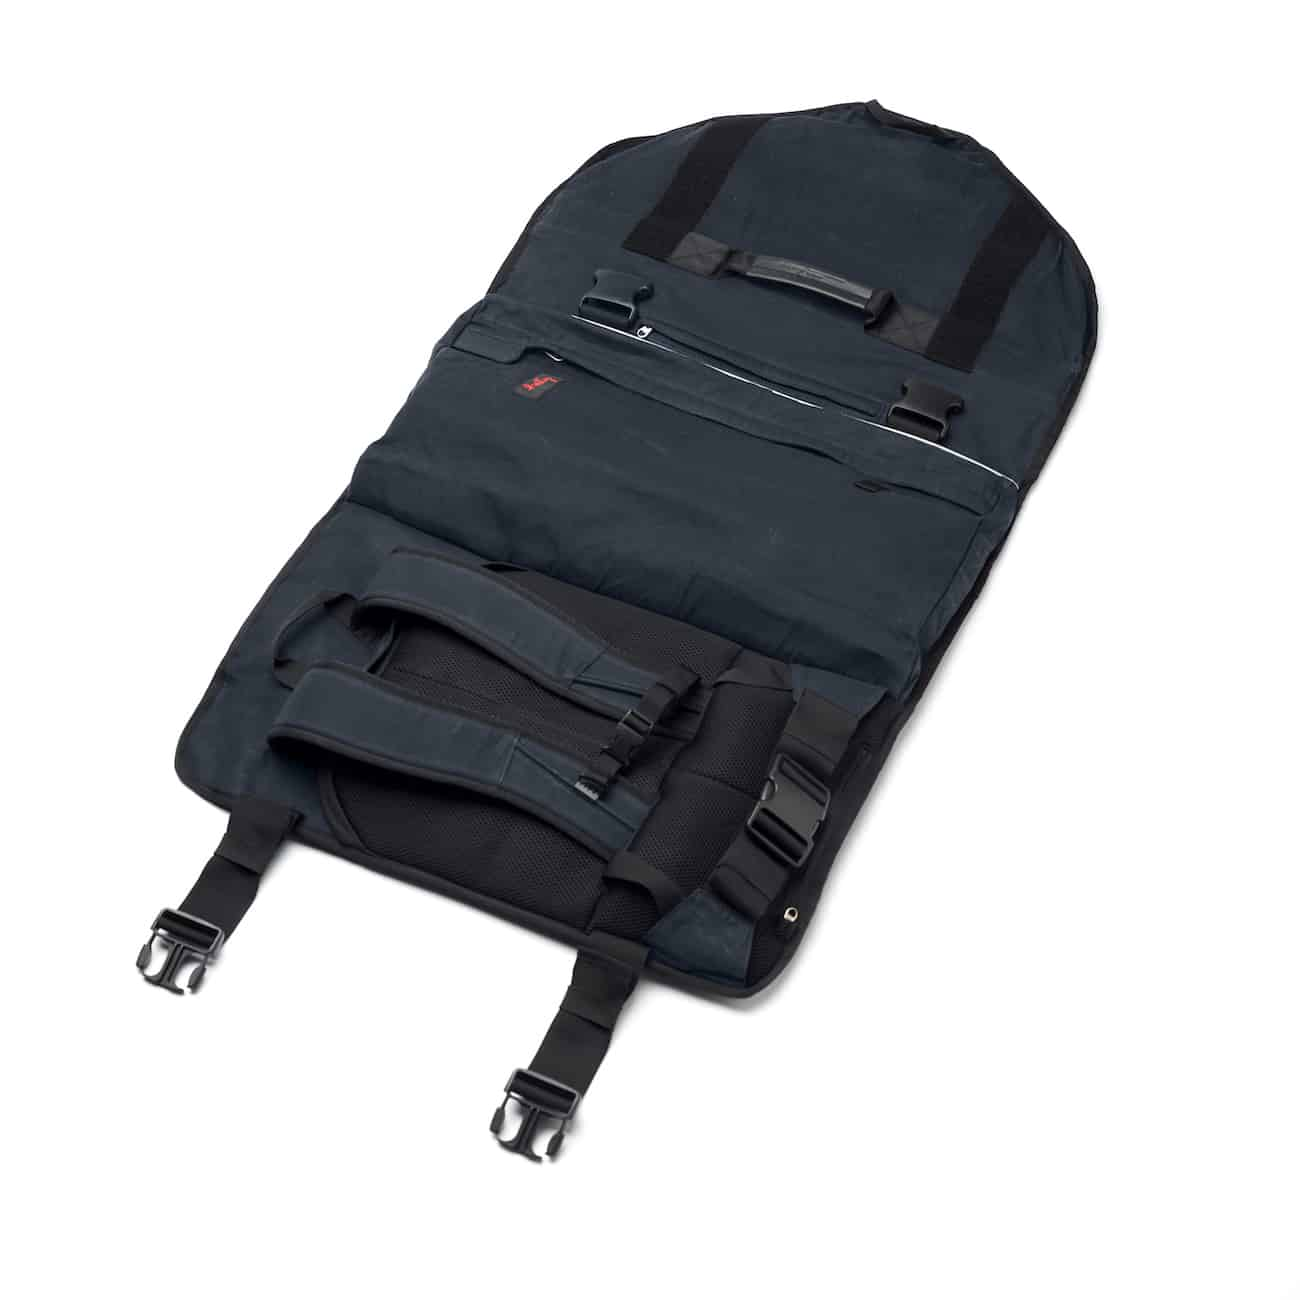 58908a55b7 CoPilot Backpack Canvas (Limited Edition) - Henty